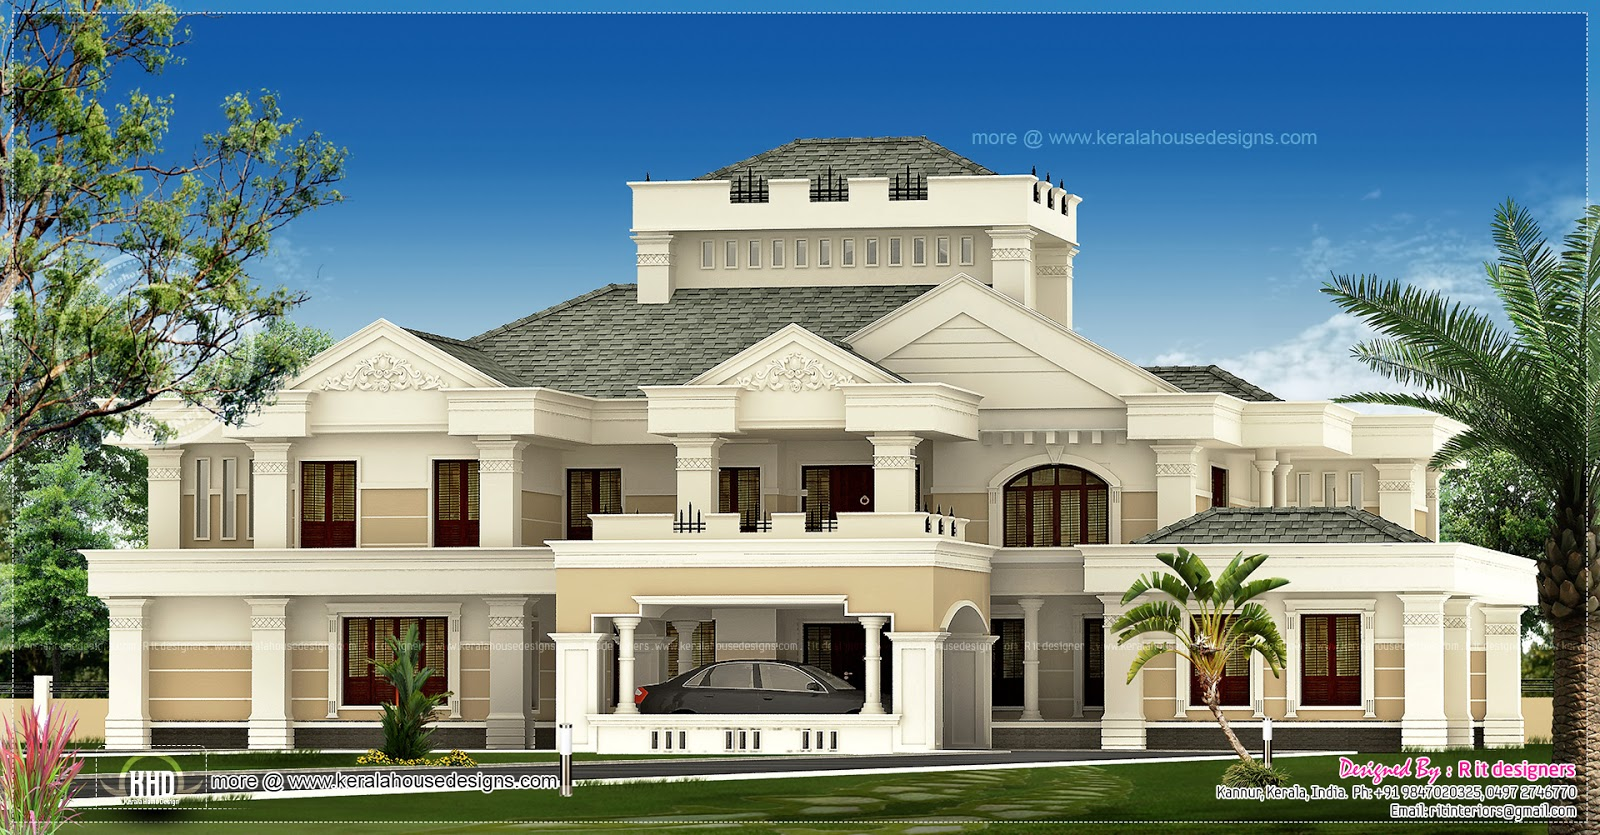 Super luxury Kerala house exterior Kerala home design and floor plans